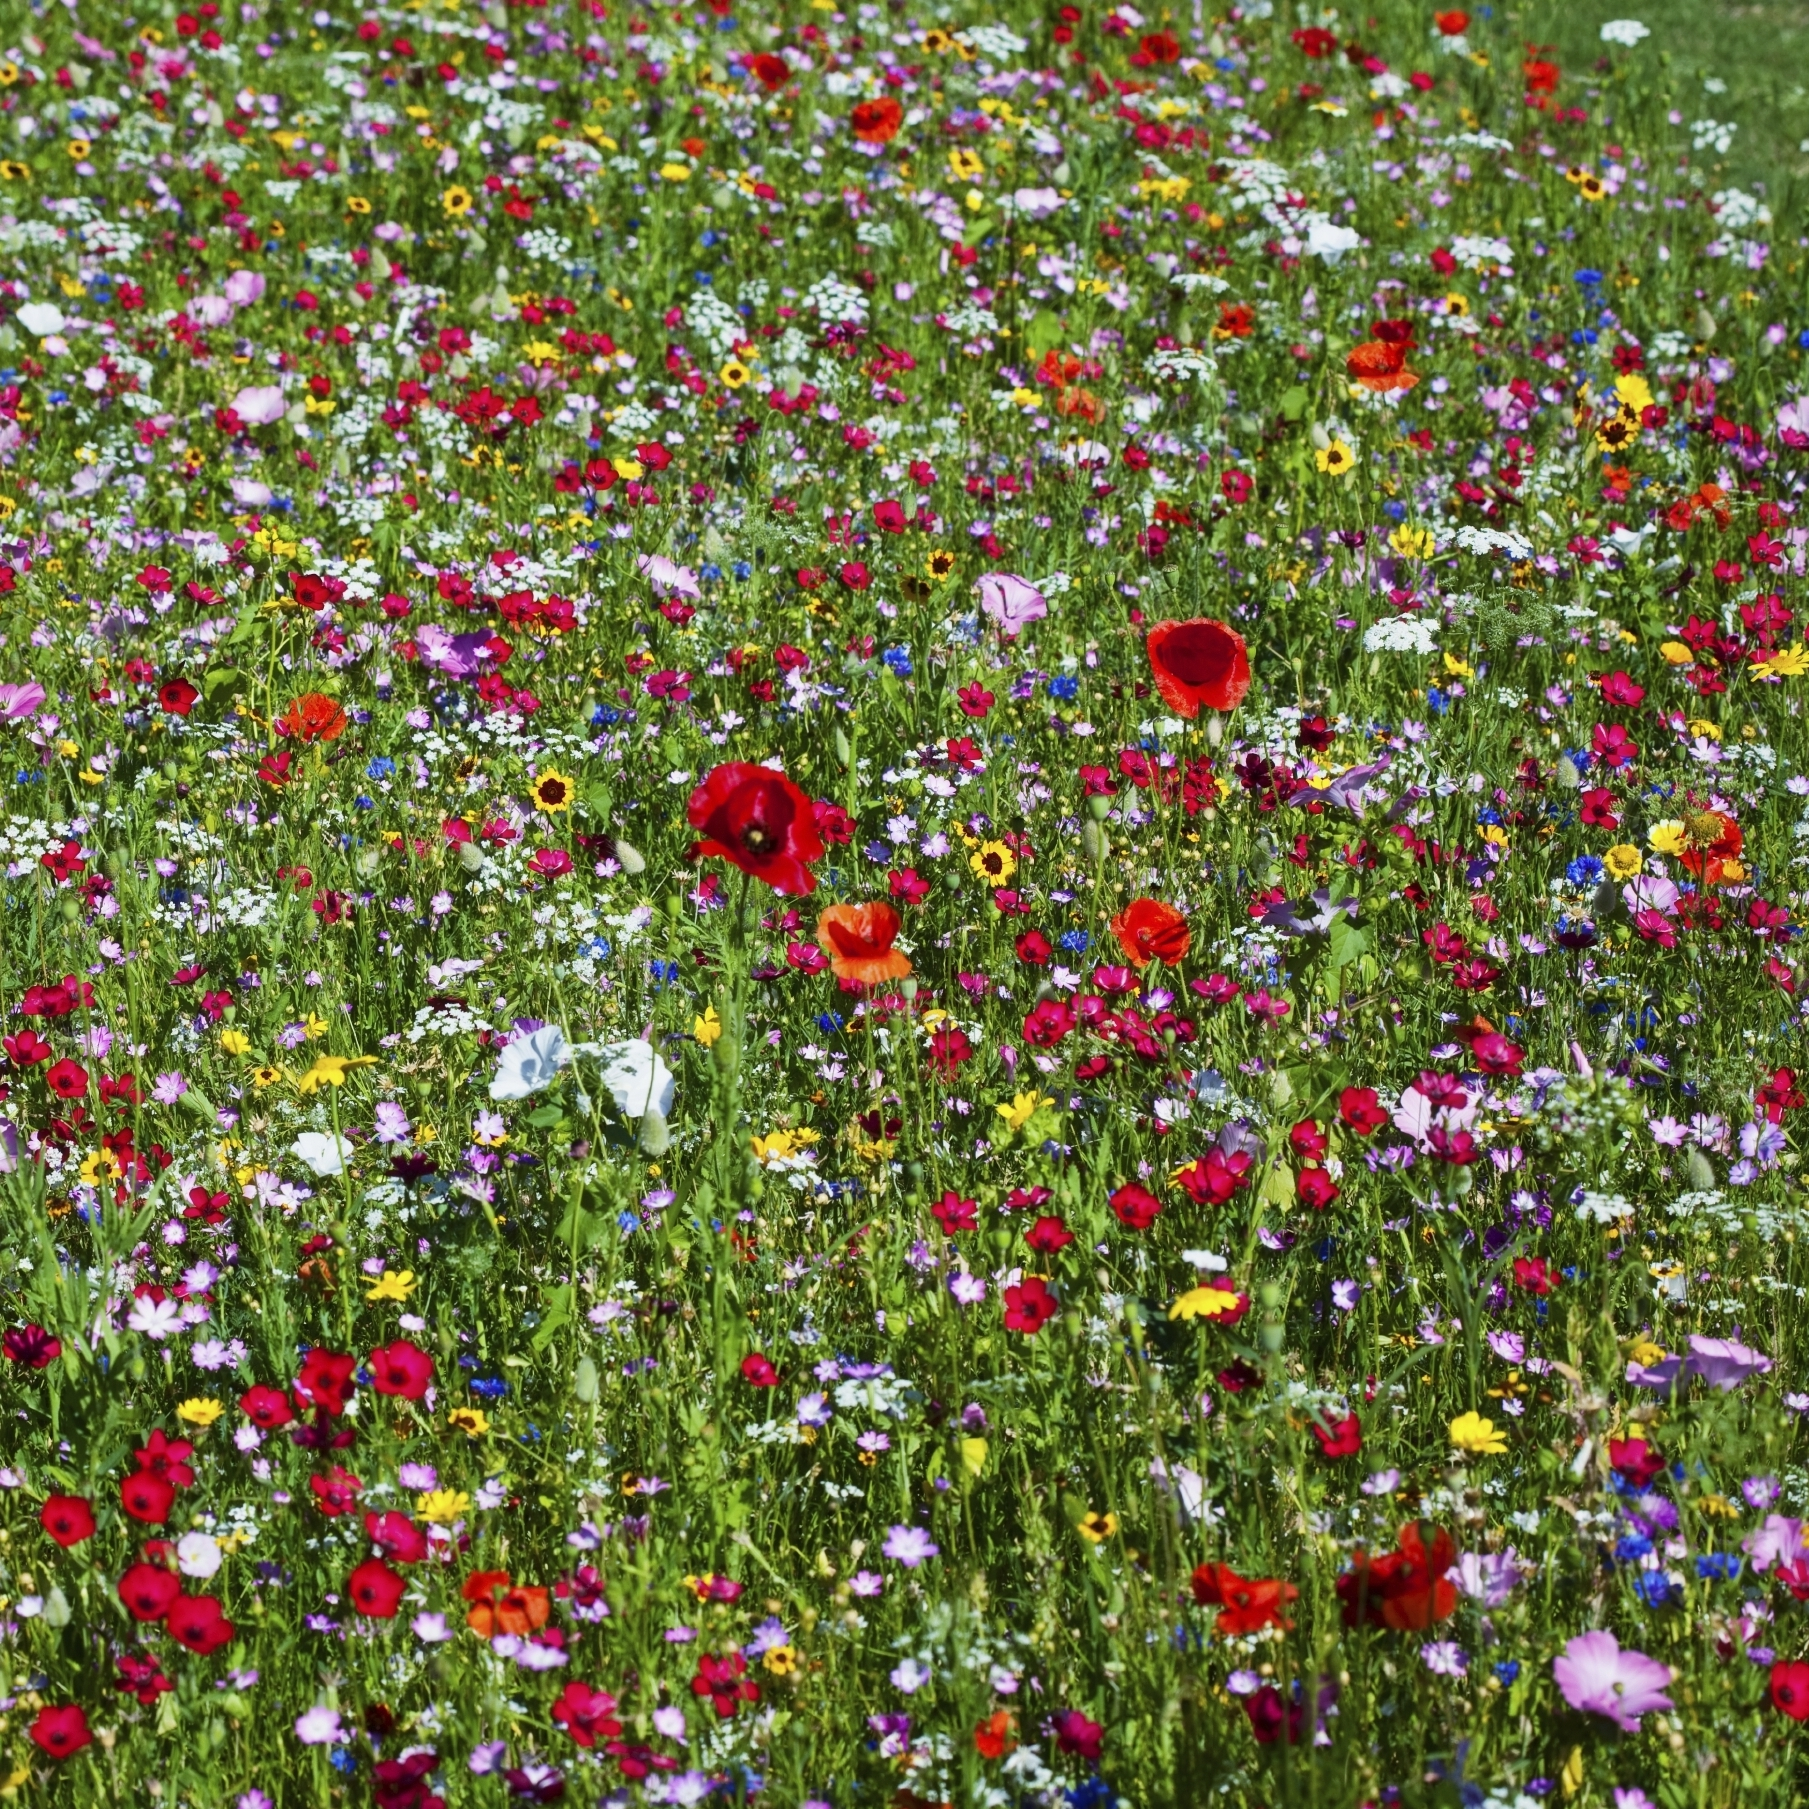 How's your internal garden? Diversity in wildflowers is pretty, but diversity in the so-called microflora living in your gut is even better.